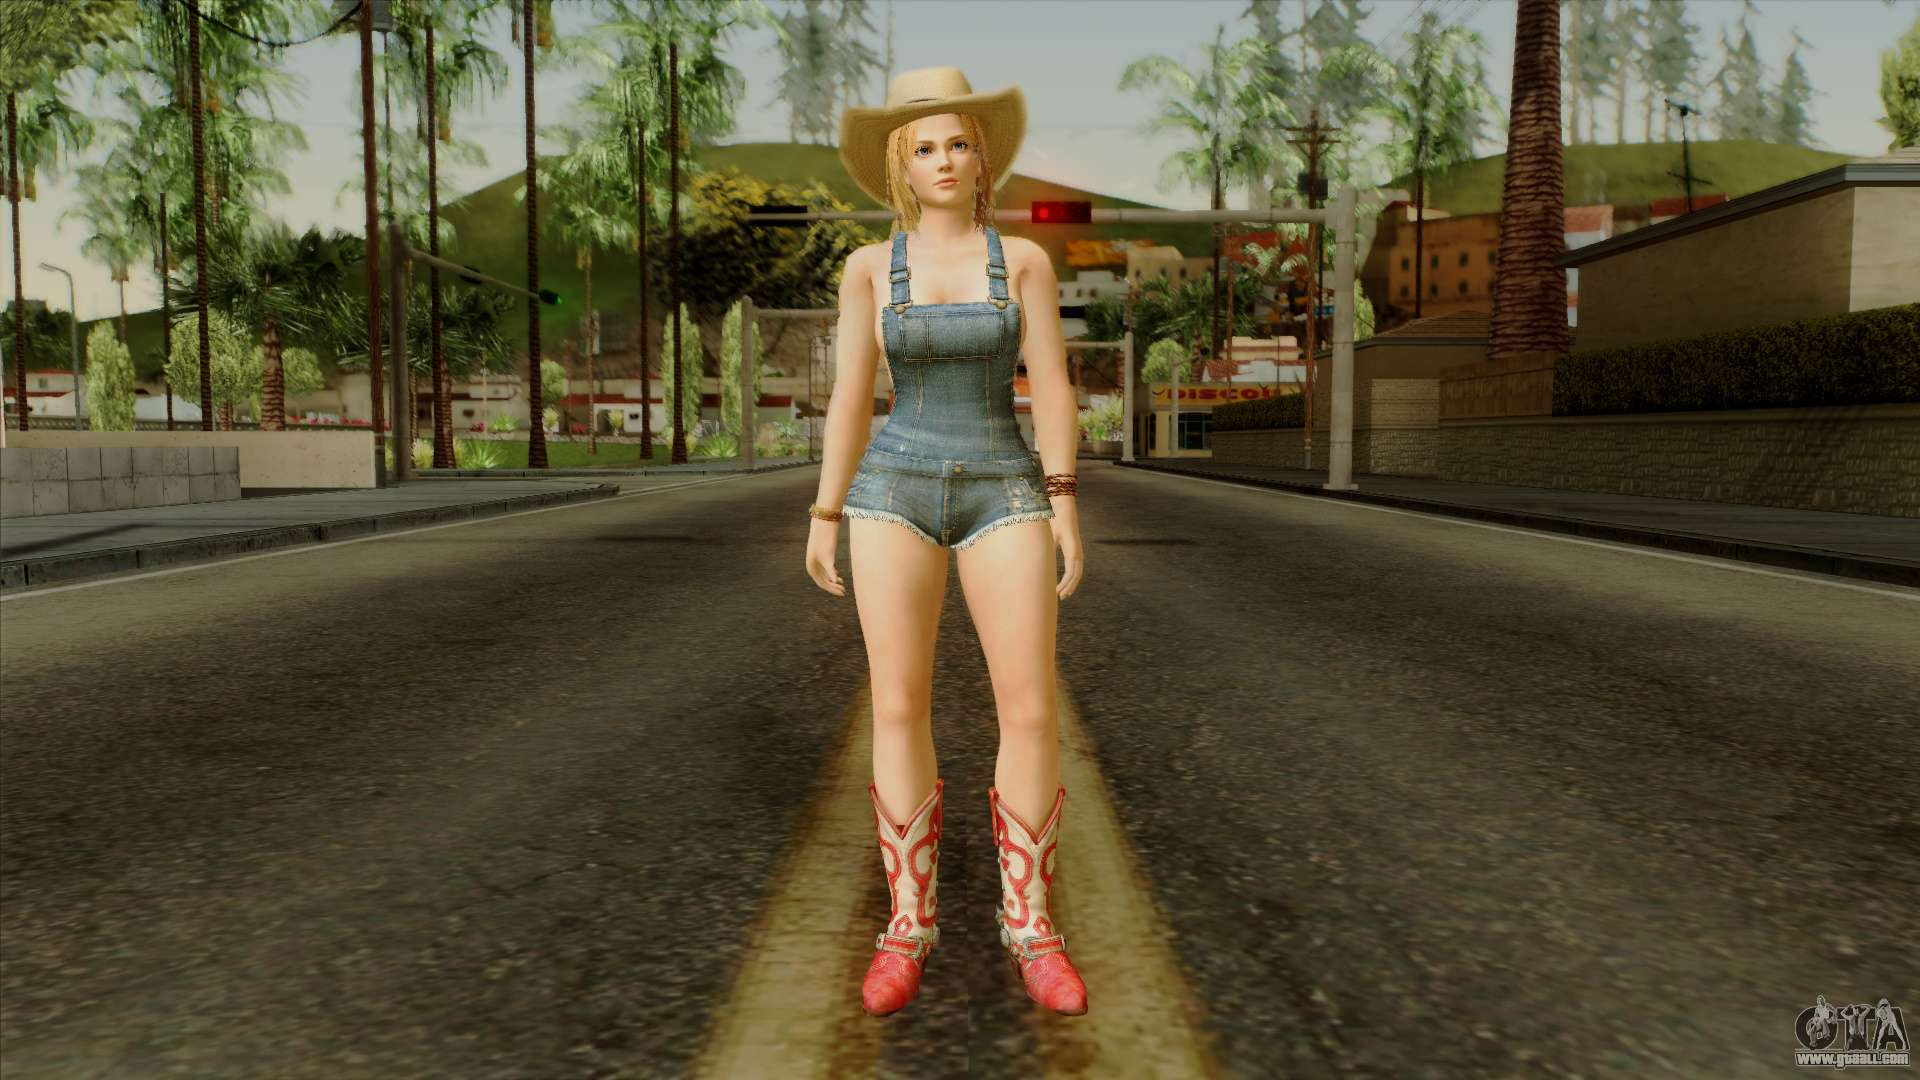 Strip club locations GTA San Andreas -